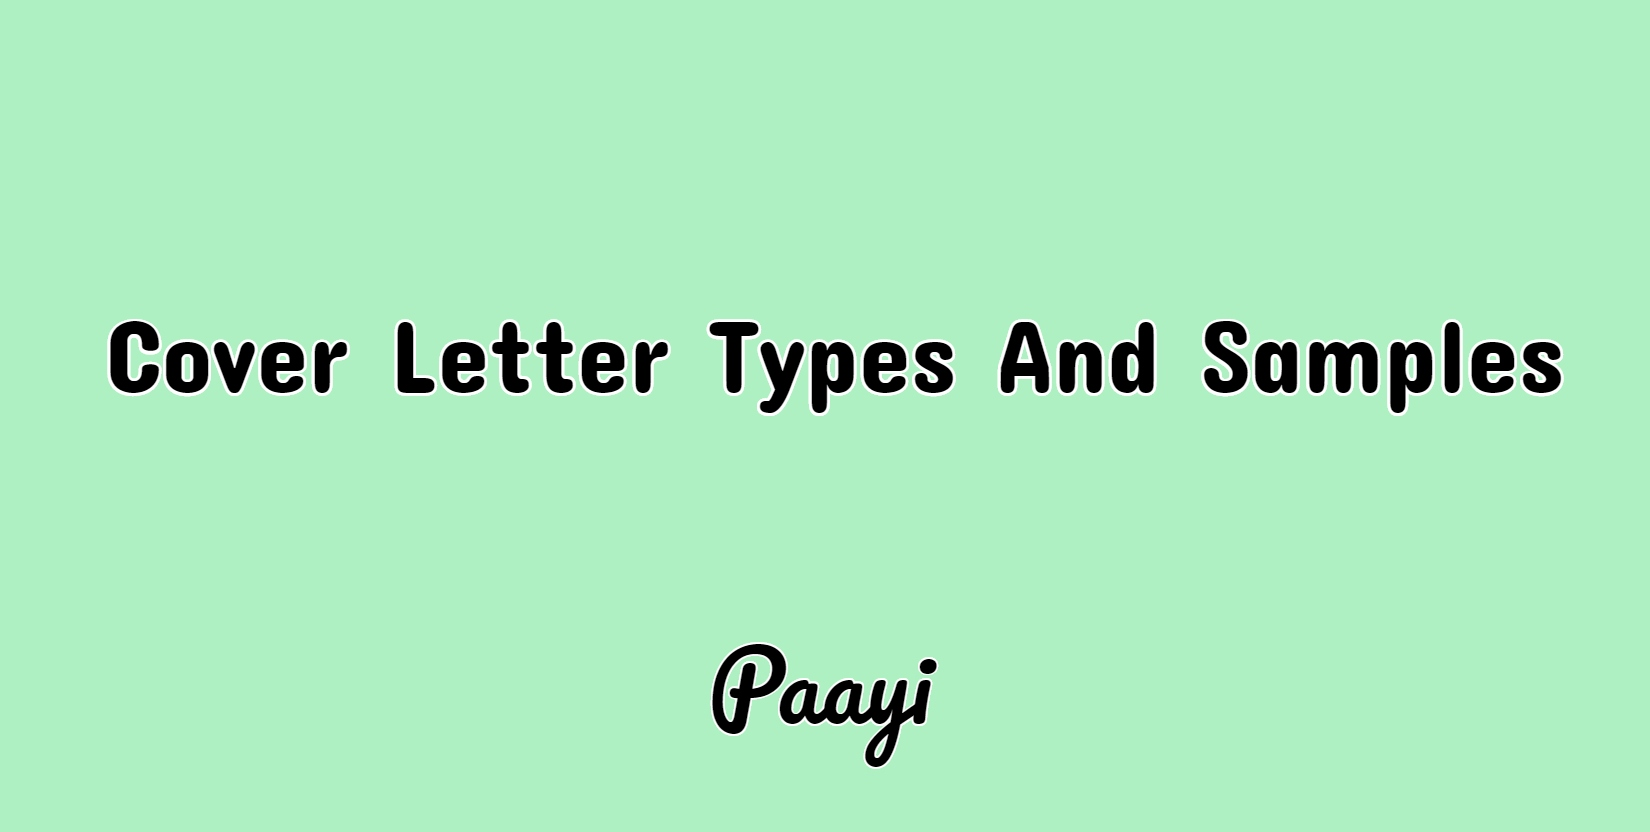 Cover Letter Types And Samples | Cover Letter Types | Paayi